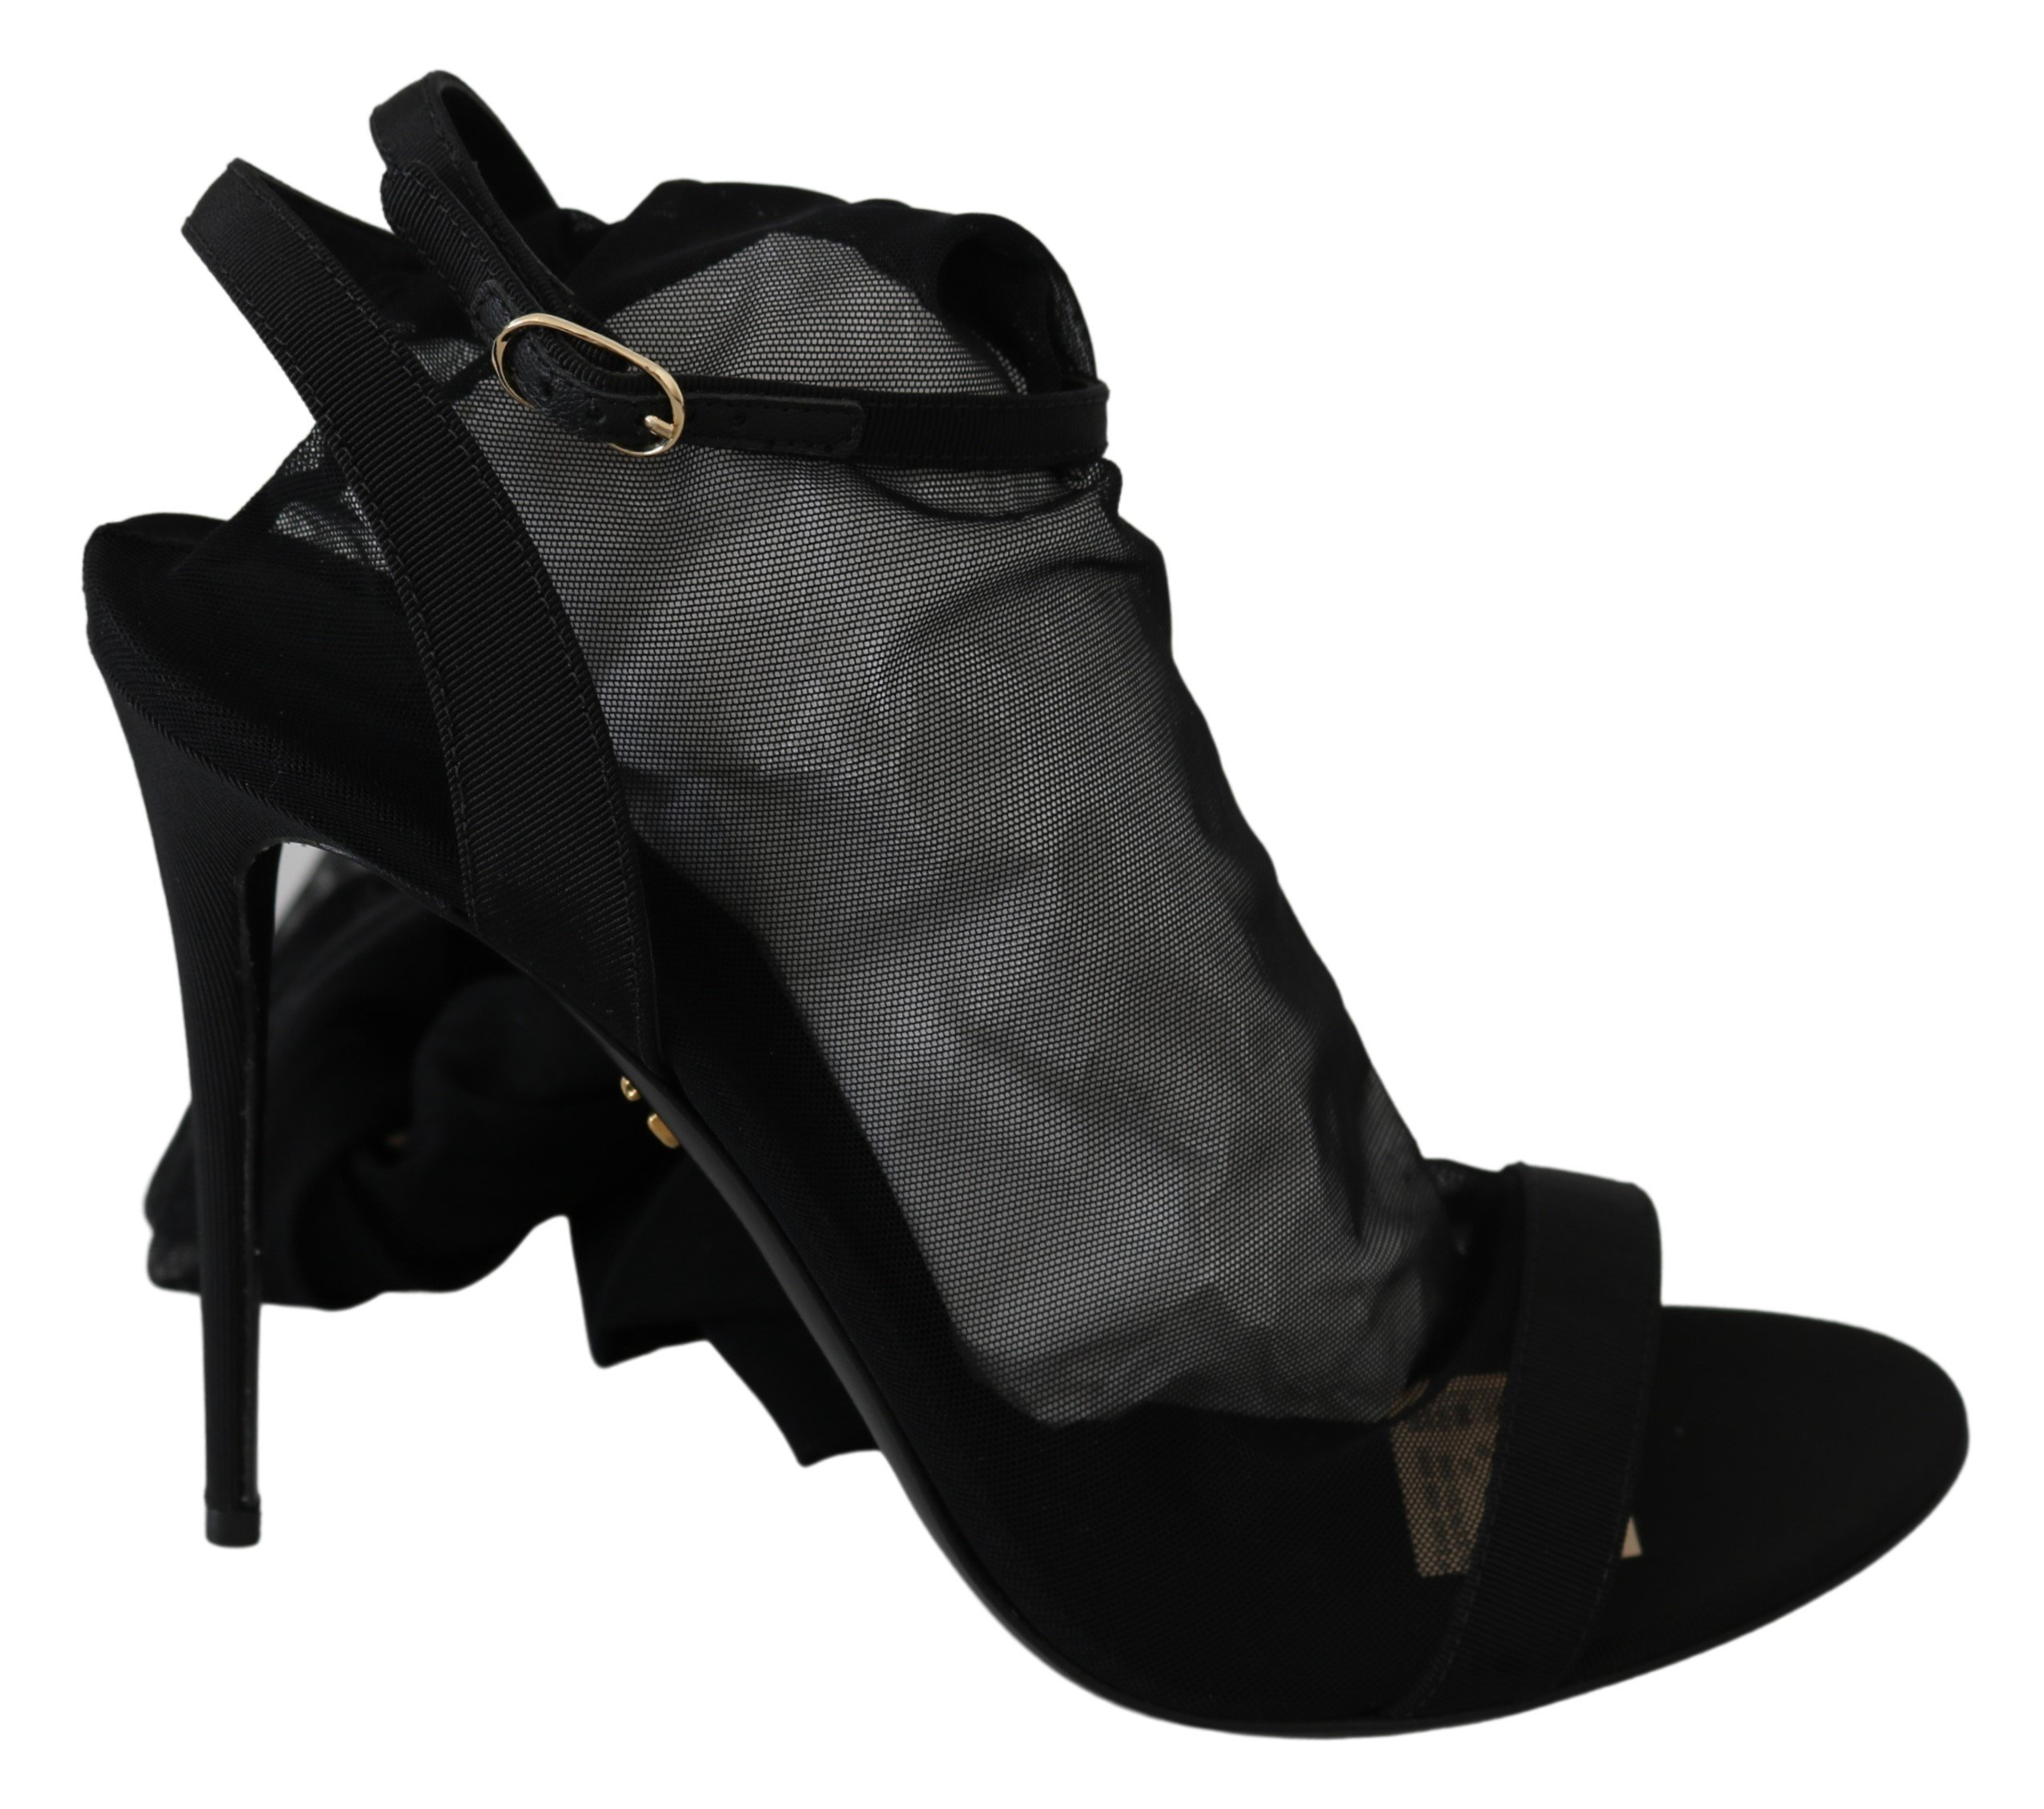 Black Tulle Stretch High Heels Strap Shoes - EU39/US8.5